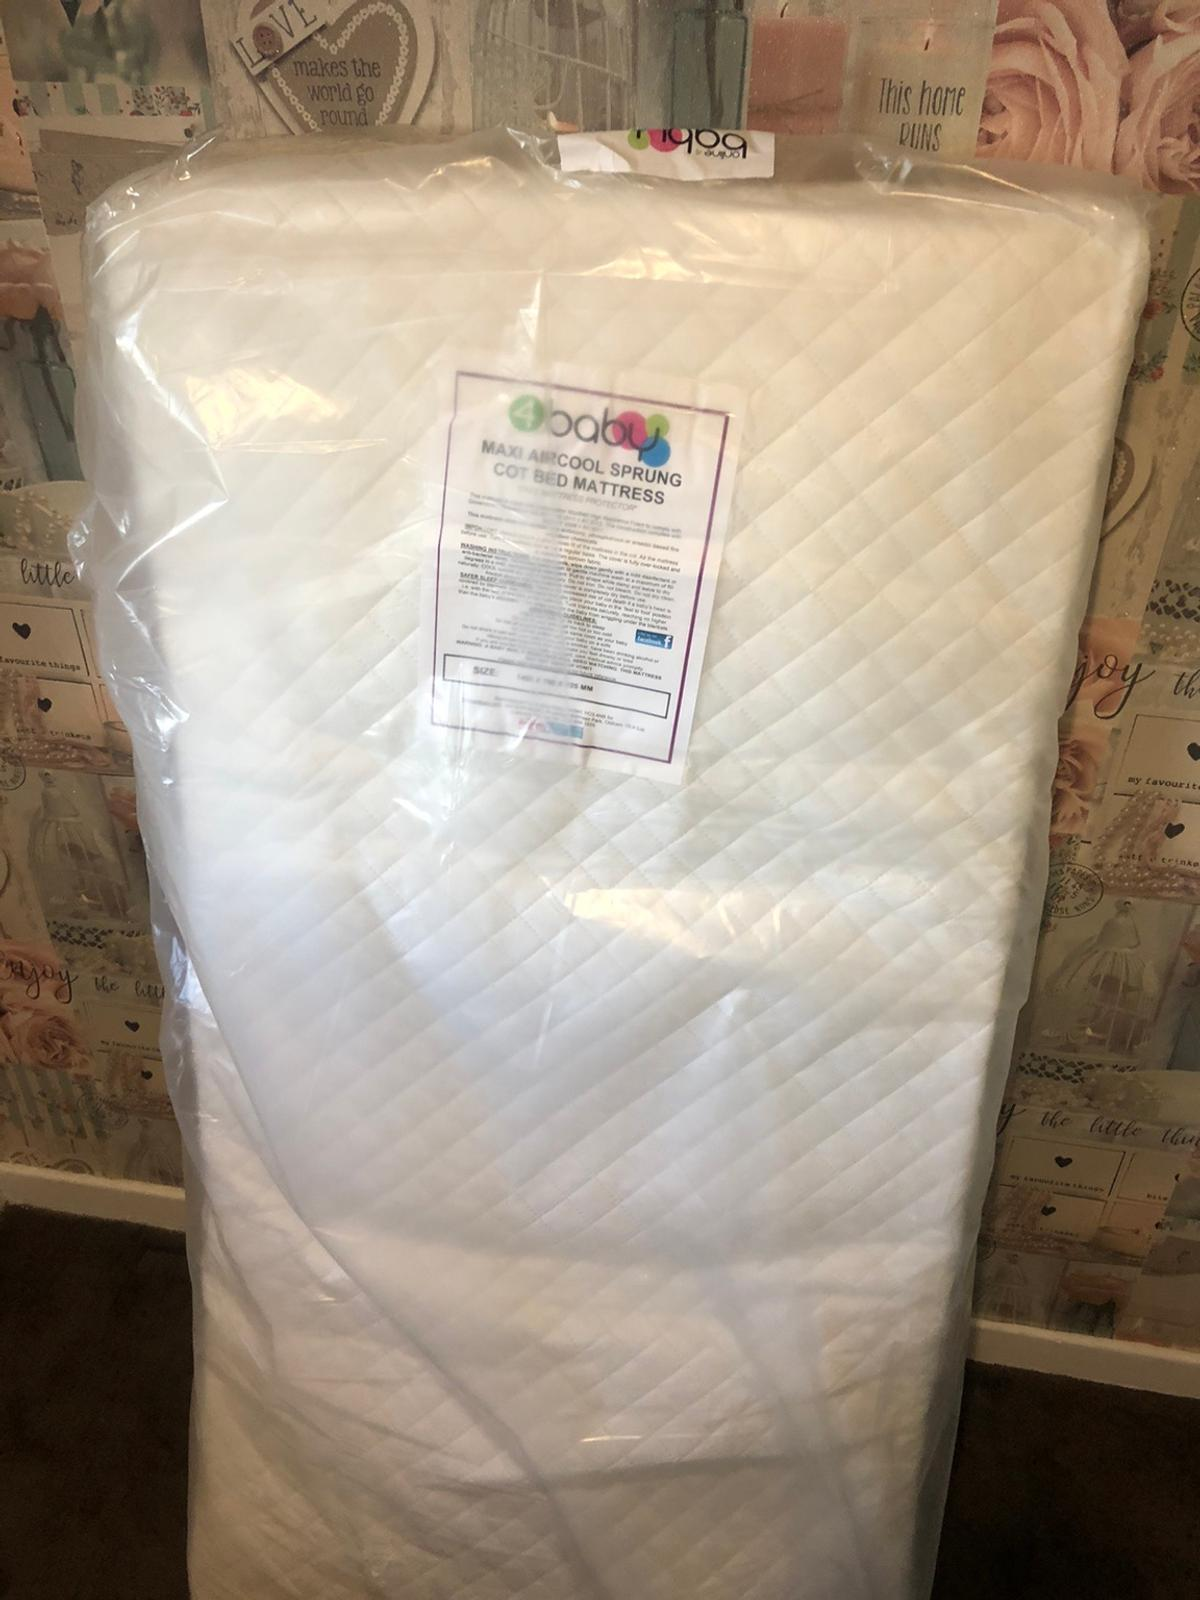 Brand new sealed Cot mattress cost £45 Dimensions 1400 x 700 x 125mm Mrs ordered the wrong size so just happy with money back for it. Collection or Can deliver locally.. social distancing applies. Will also sanitise the packaging! £45 ovno Thanks